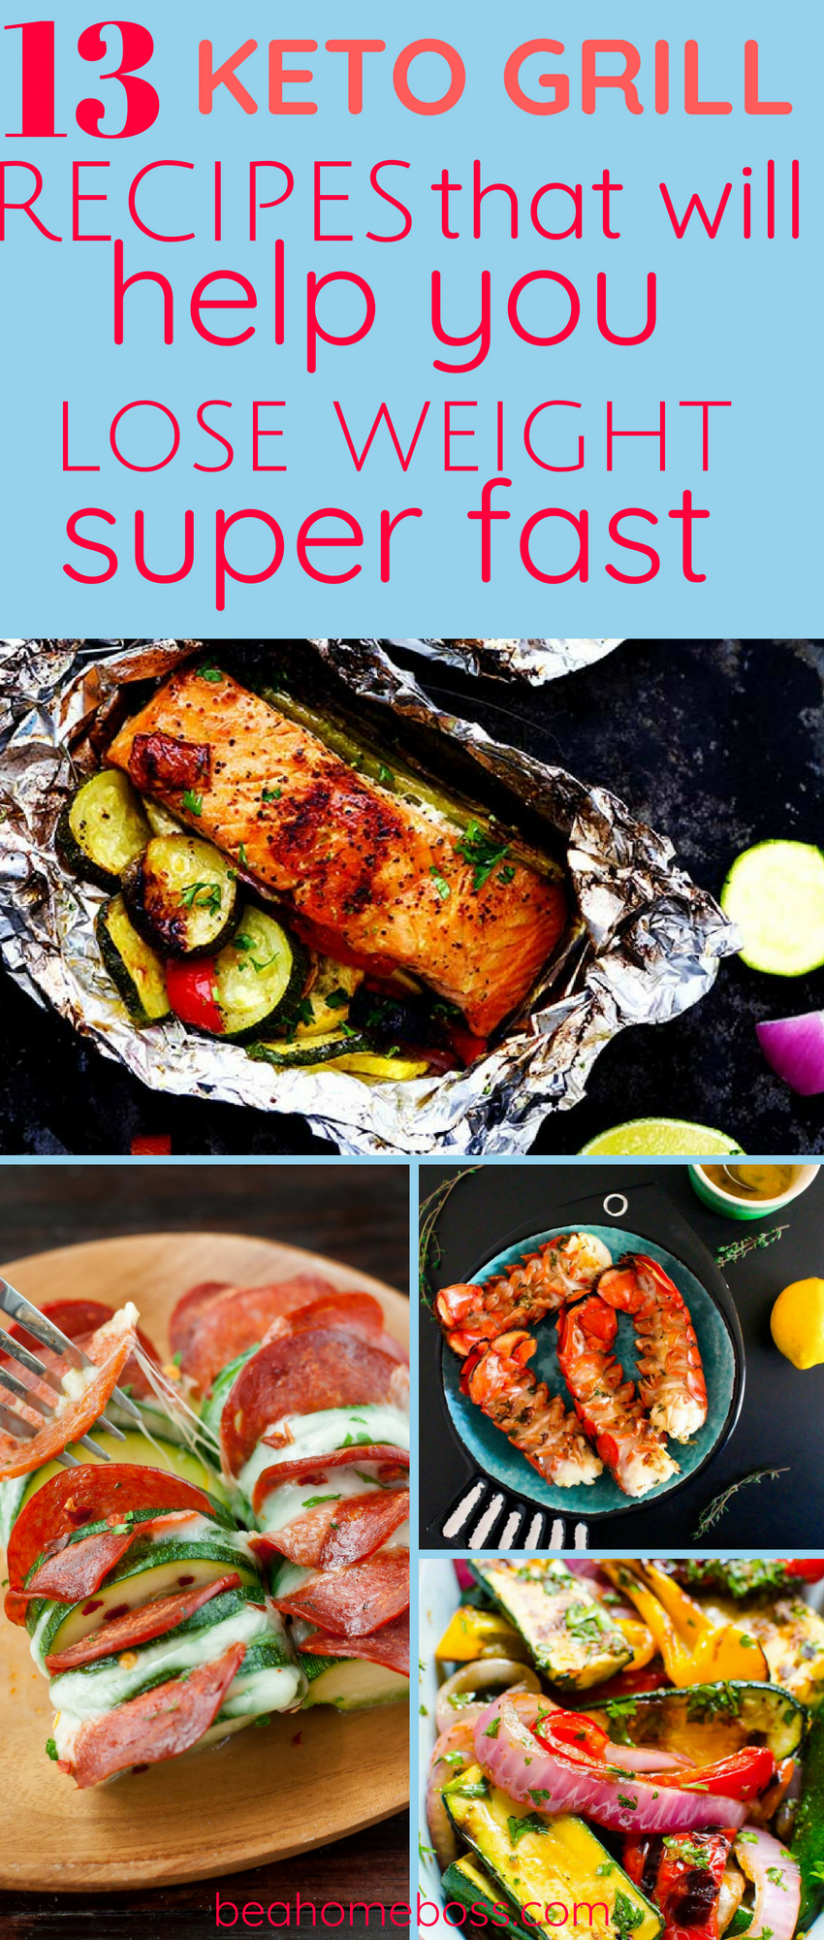 12 Keto Friendly Grill Recipes That Will Help You Lose Weight Fast ..